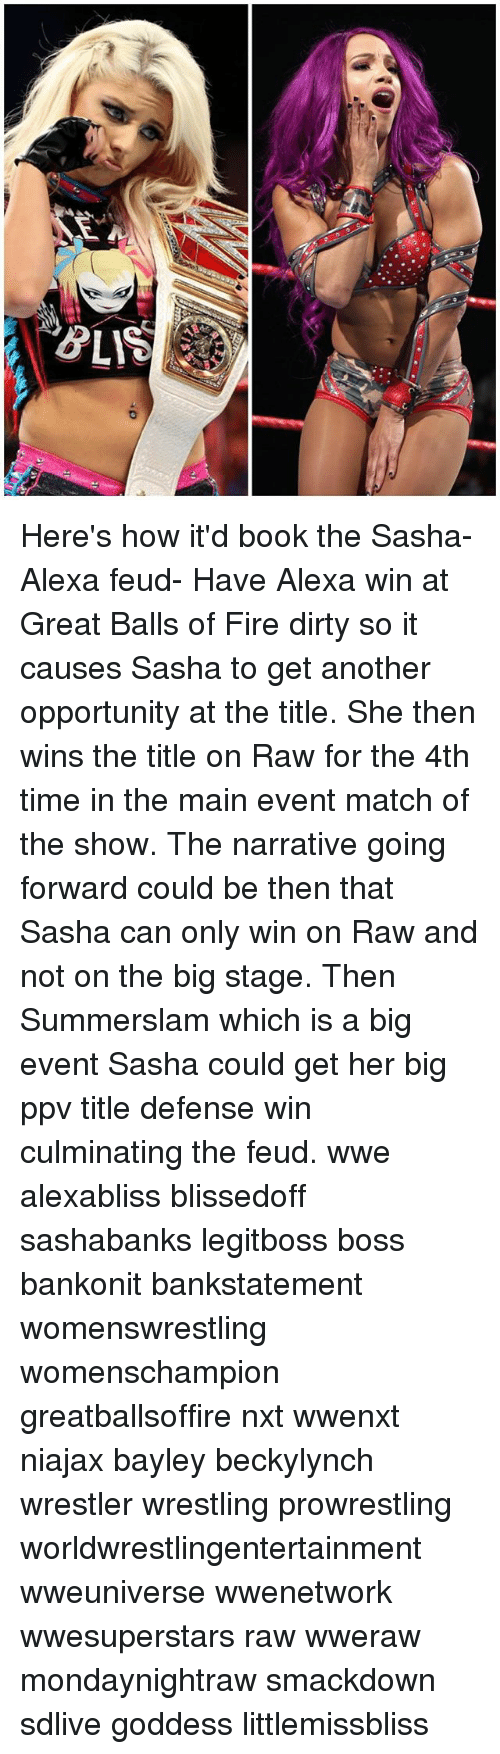 Main Event: Here's how it'd book the Sasha-Alexa feud- Have Alexa win at Great Balls of Fire dirty so it causes Sasha to get another opportunity at the title. She then wins the title on Raw for the 4th time in the main event match of the show. The narrative going forward could be then that Sasha can only win on Raw and not on the big stage. Then Summerslam which is a big event Sasha could get her big ppv title defense win culminating the feud. wwe alexabliss blissedoff sashabanks legitboss boss bankonit bankstatement womenswrestling womenschampion greatballsoffire nxt wwenxt niajax bayley beckylynch wrestler wrestling prowrestling worldwrestlingentertainment wweuniverse wwenetwork wwesuperstars raw wweraw mondaynightraw smackdown sdlive goddess littlemissbliss